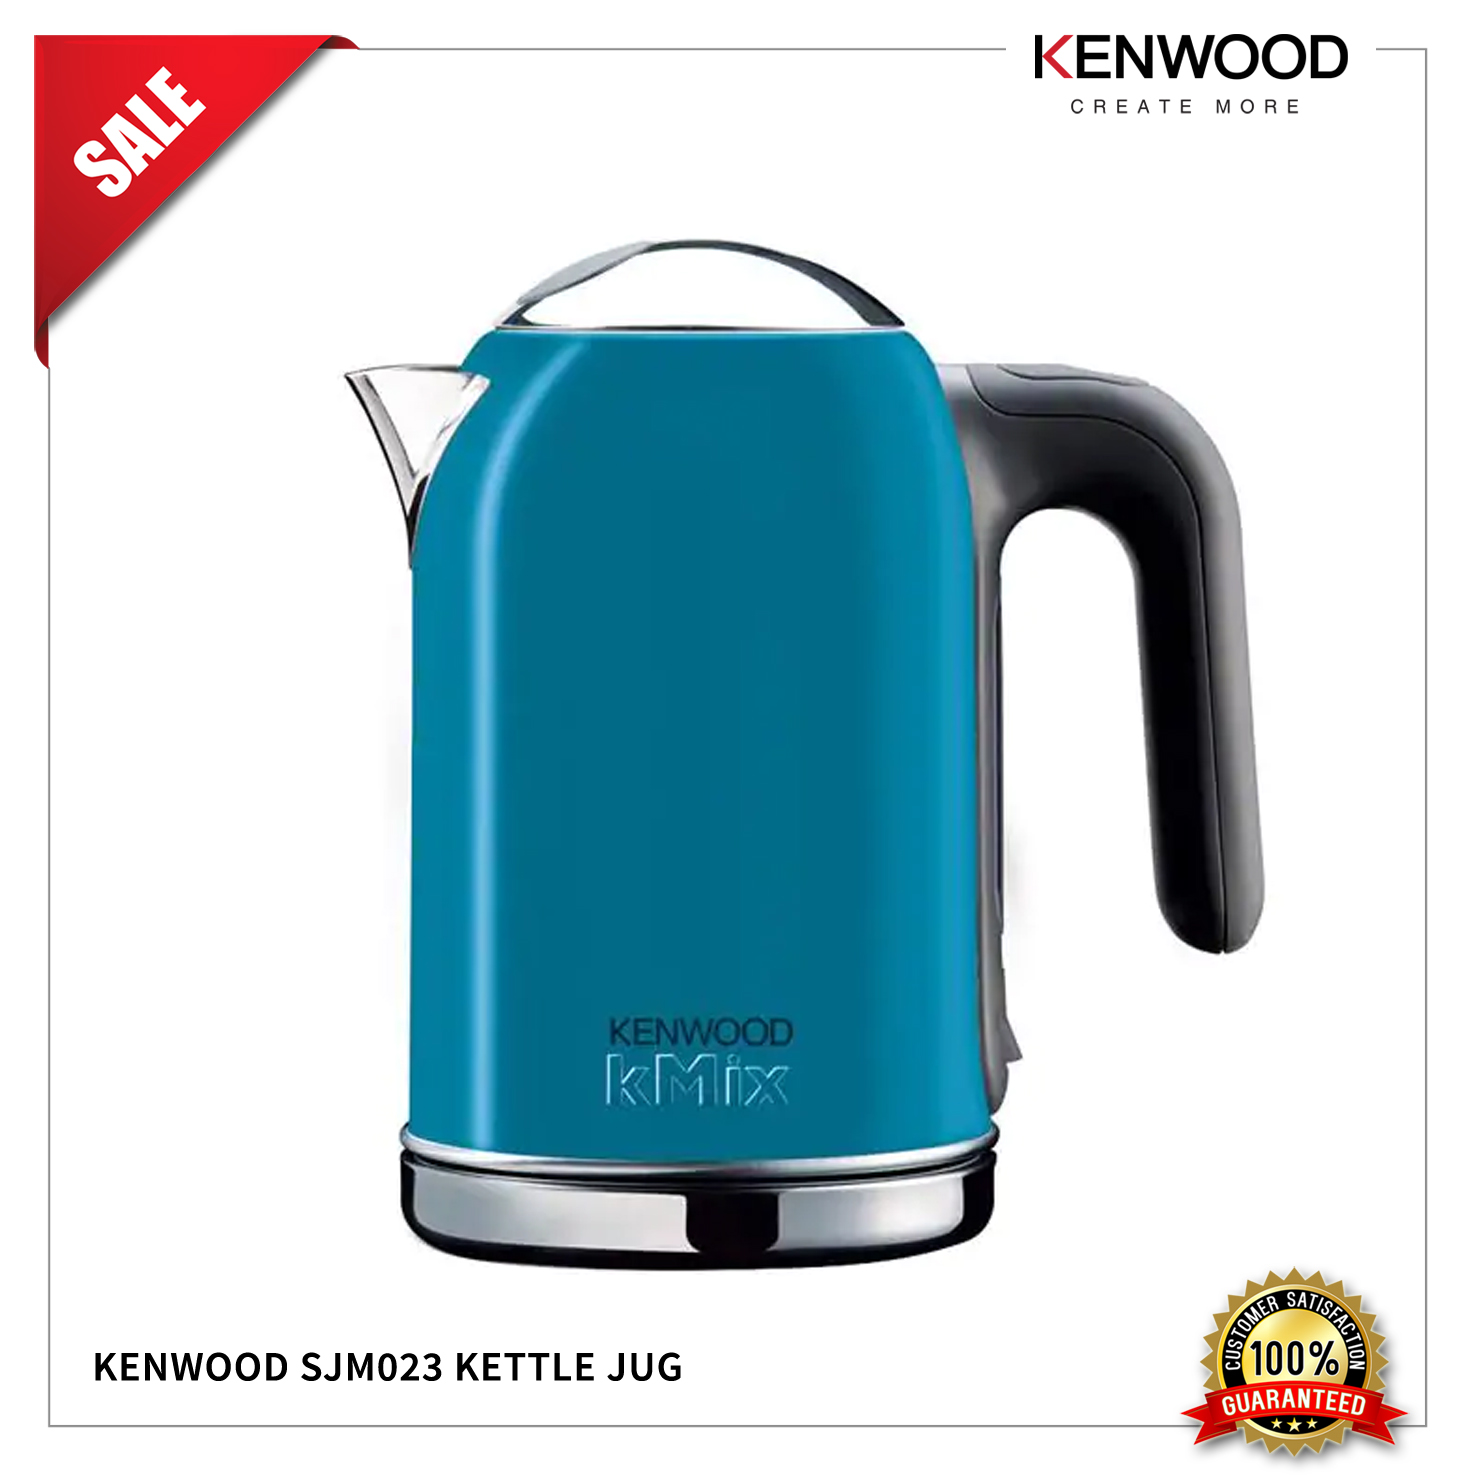 KENWOOD SJM023 KETTLEJUG METAL_BLUE – REVISI 1